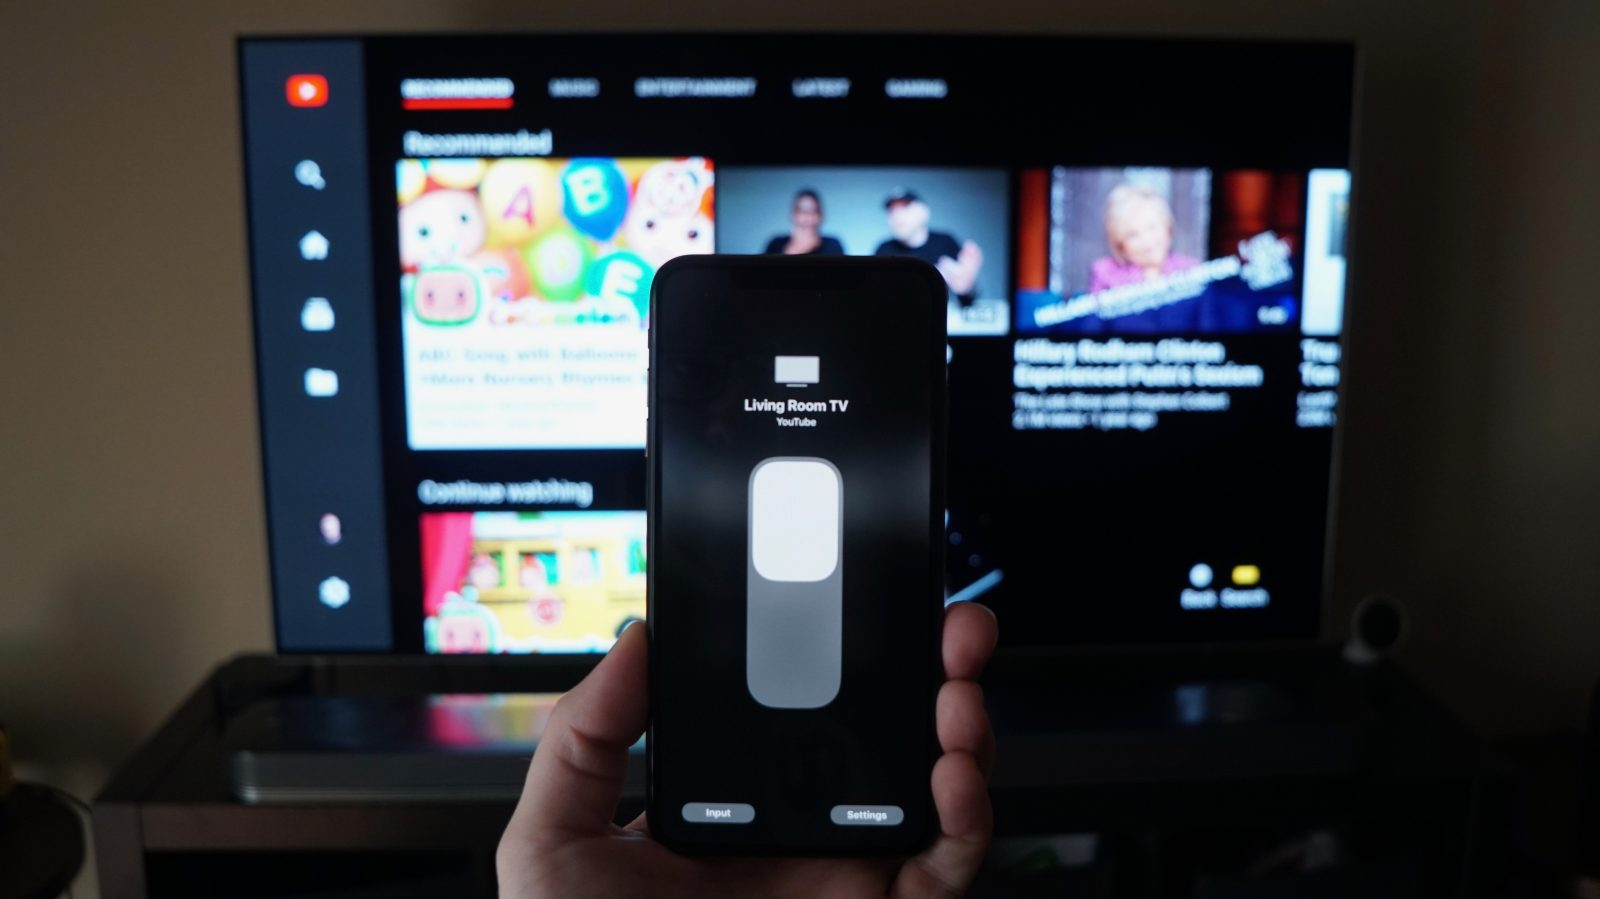 HomeKit Weekly: Previewing TV support in the Home app on iOS